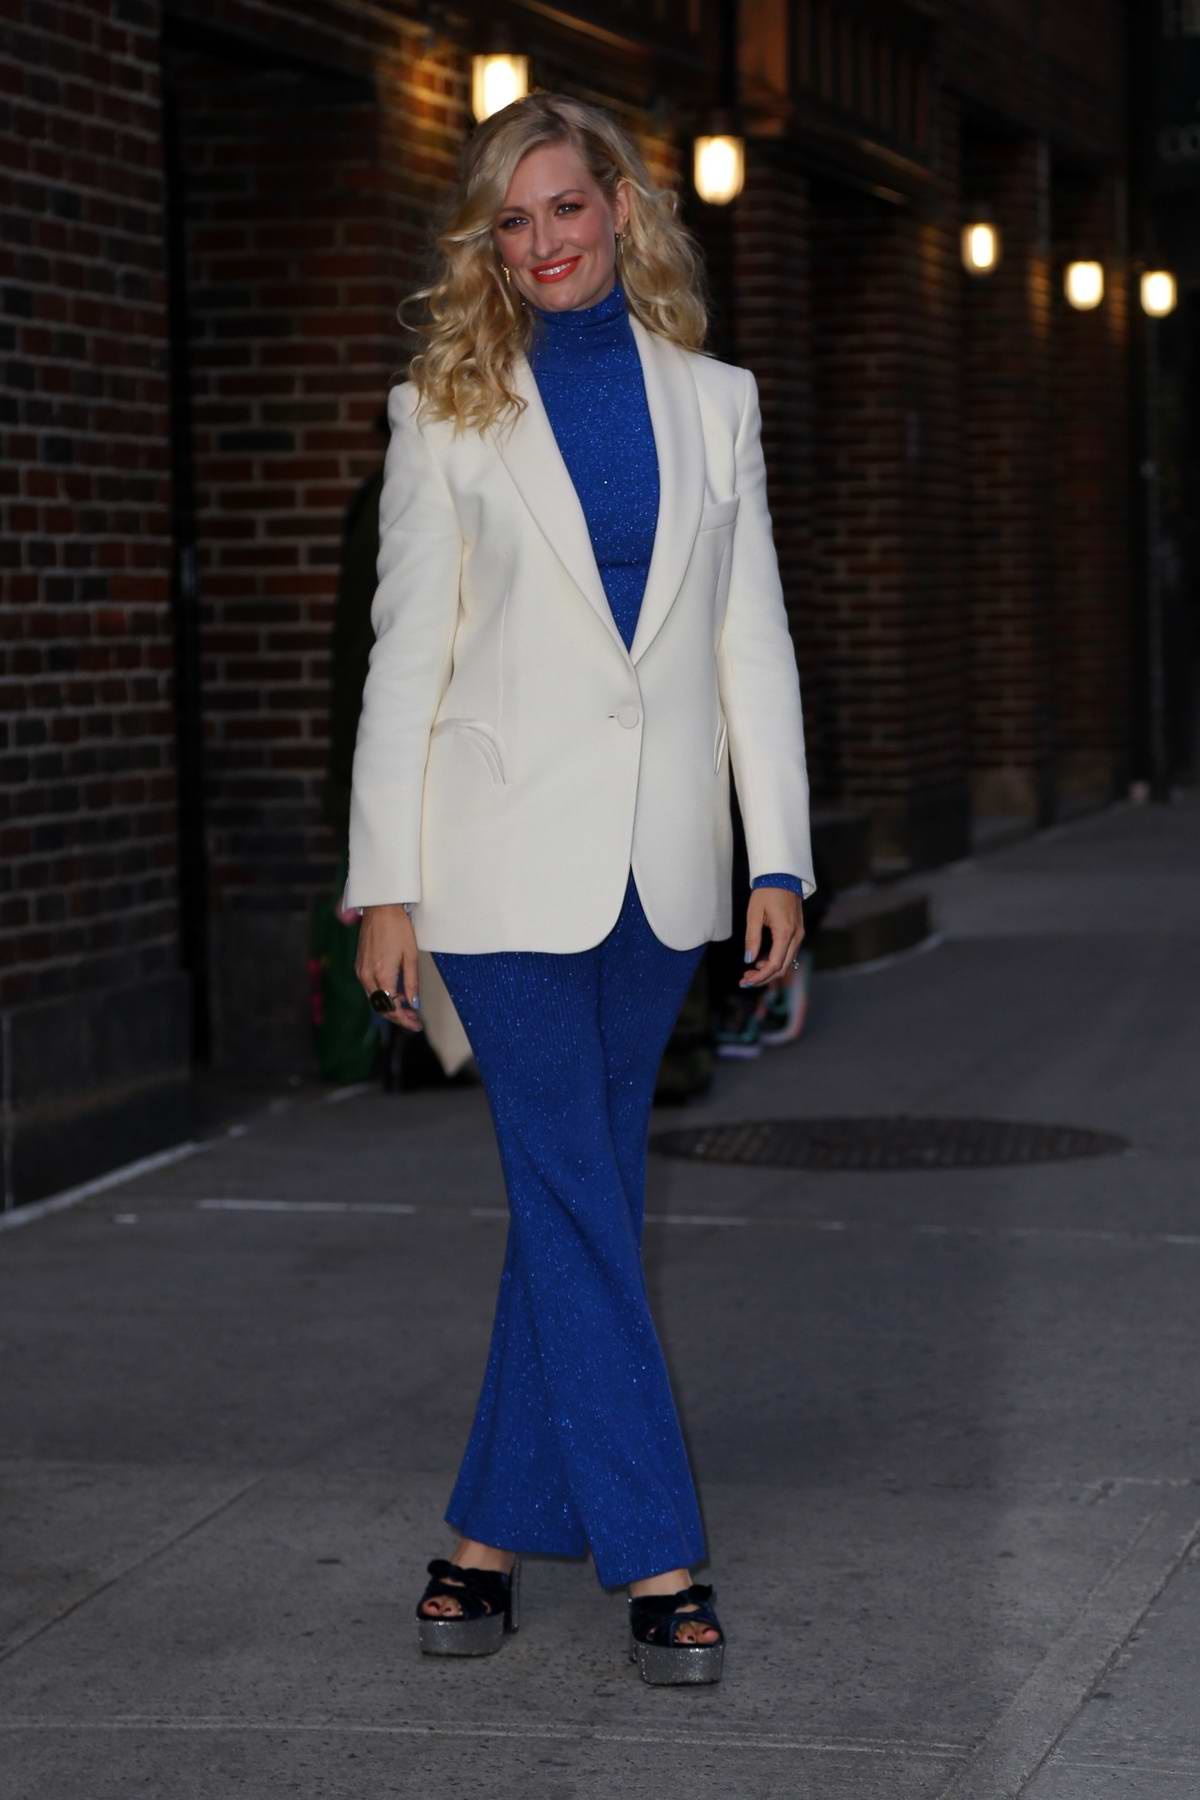 Beth Behrs wears a white blazer with a blue outfit while visiting 'The Late Show with Stephen Colbert' in New York City